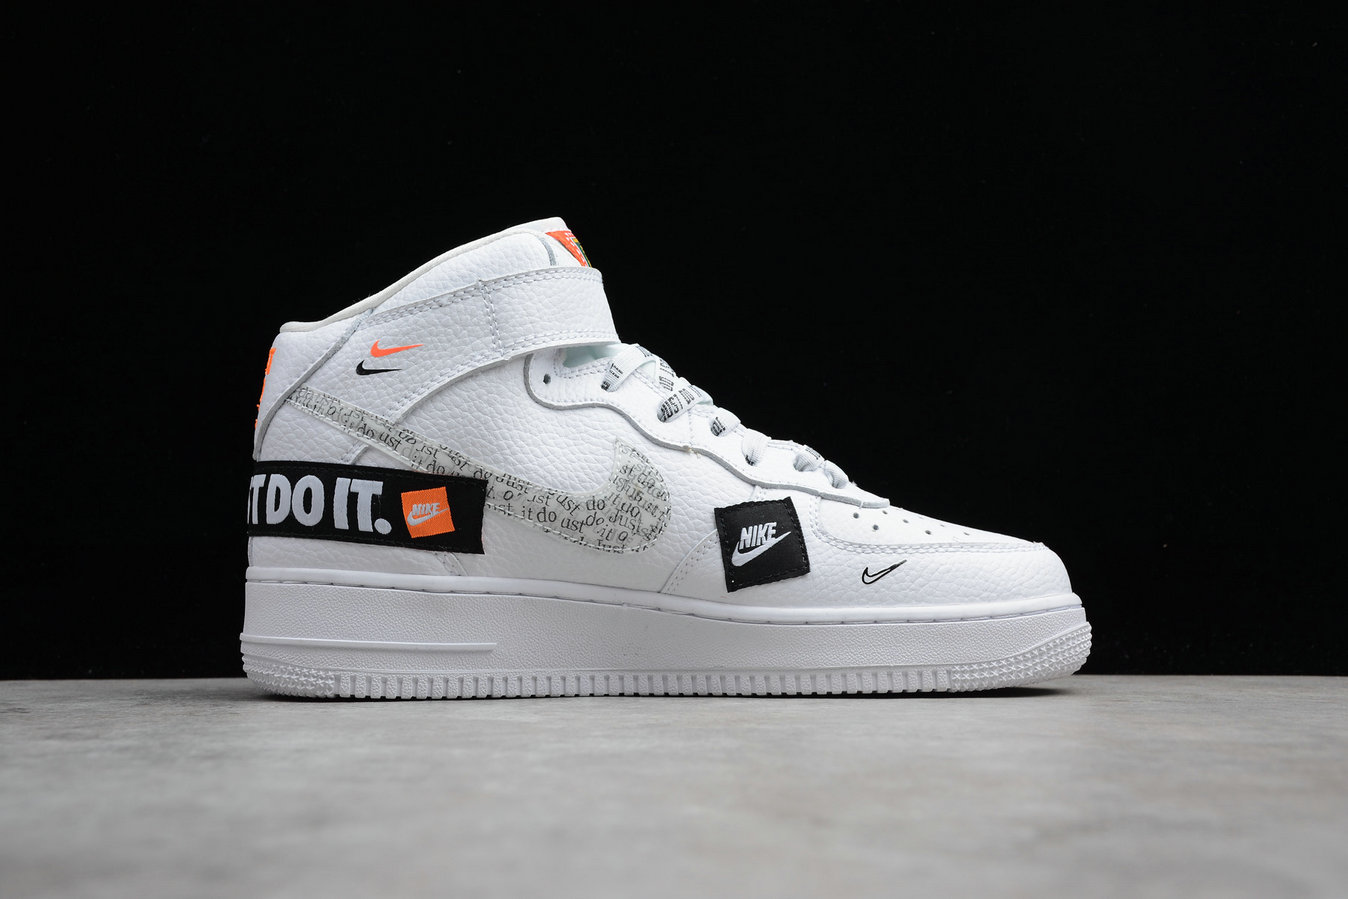 Womens Nike Air Force 1 Mid Retro BQ6474-100 White Orange Joint Name Blanc Orange Nom Commun